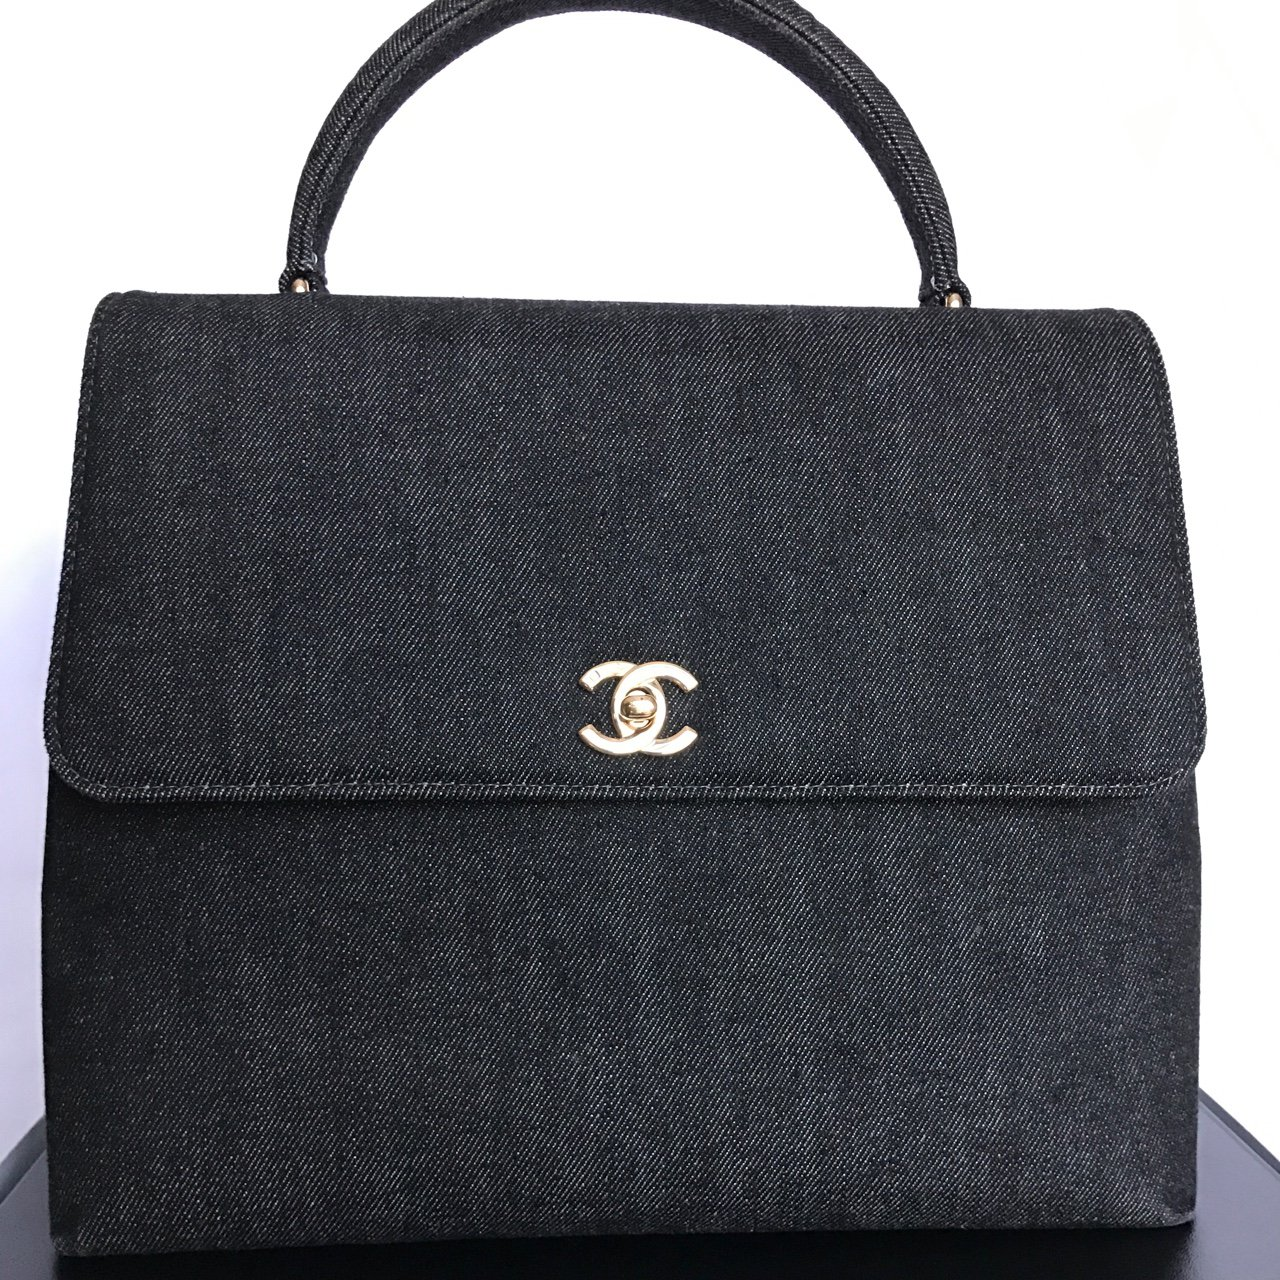 99fcdfe91002 Chanel Kelly bag in black denim. In excellent condition